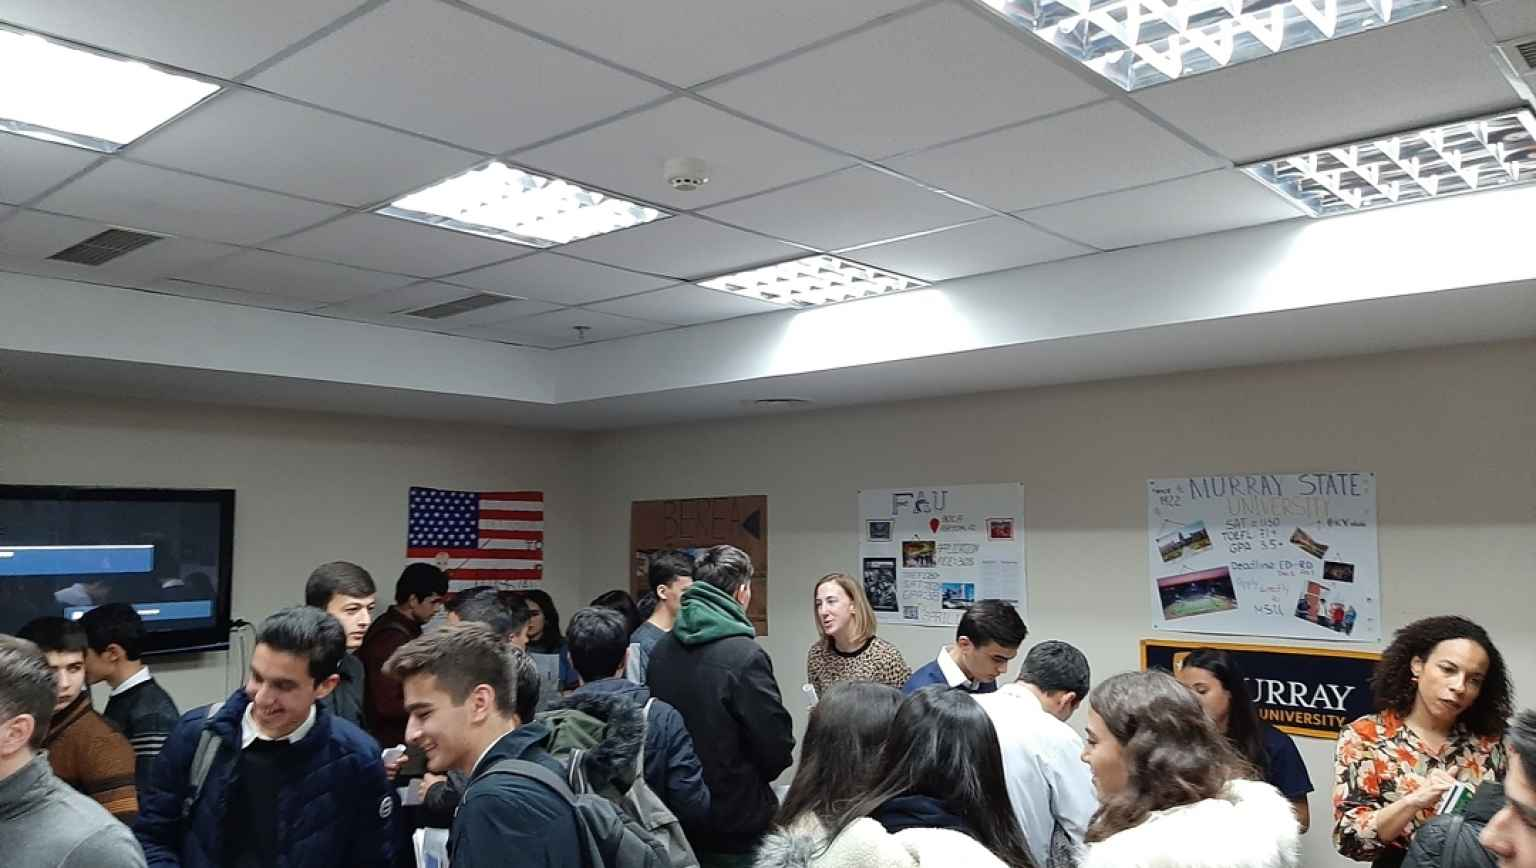 Last day of International Education Week in Tajikistan, November 22-nd was highlighted by the First EducationUSA Alumni Fair in Tajikistan. This event was supported by American Councils Tajikistan and U.S. Embassy in Dushanbe. American expats (U.S. Embass